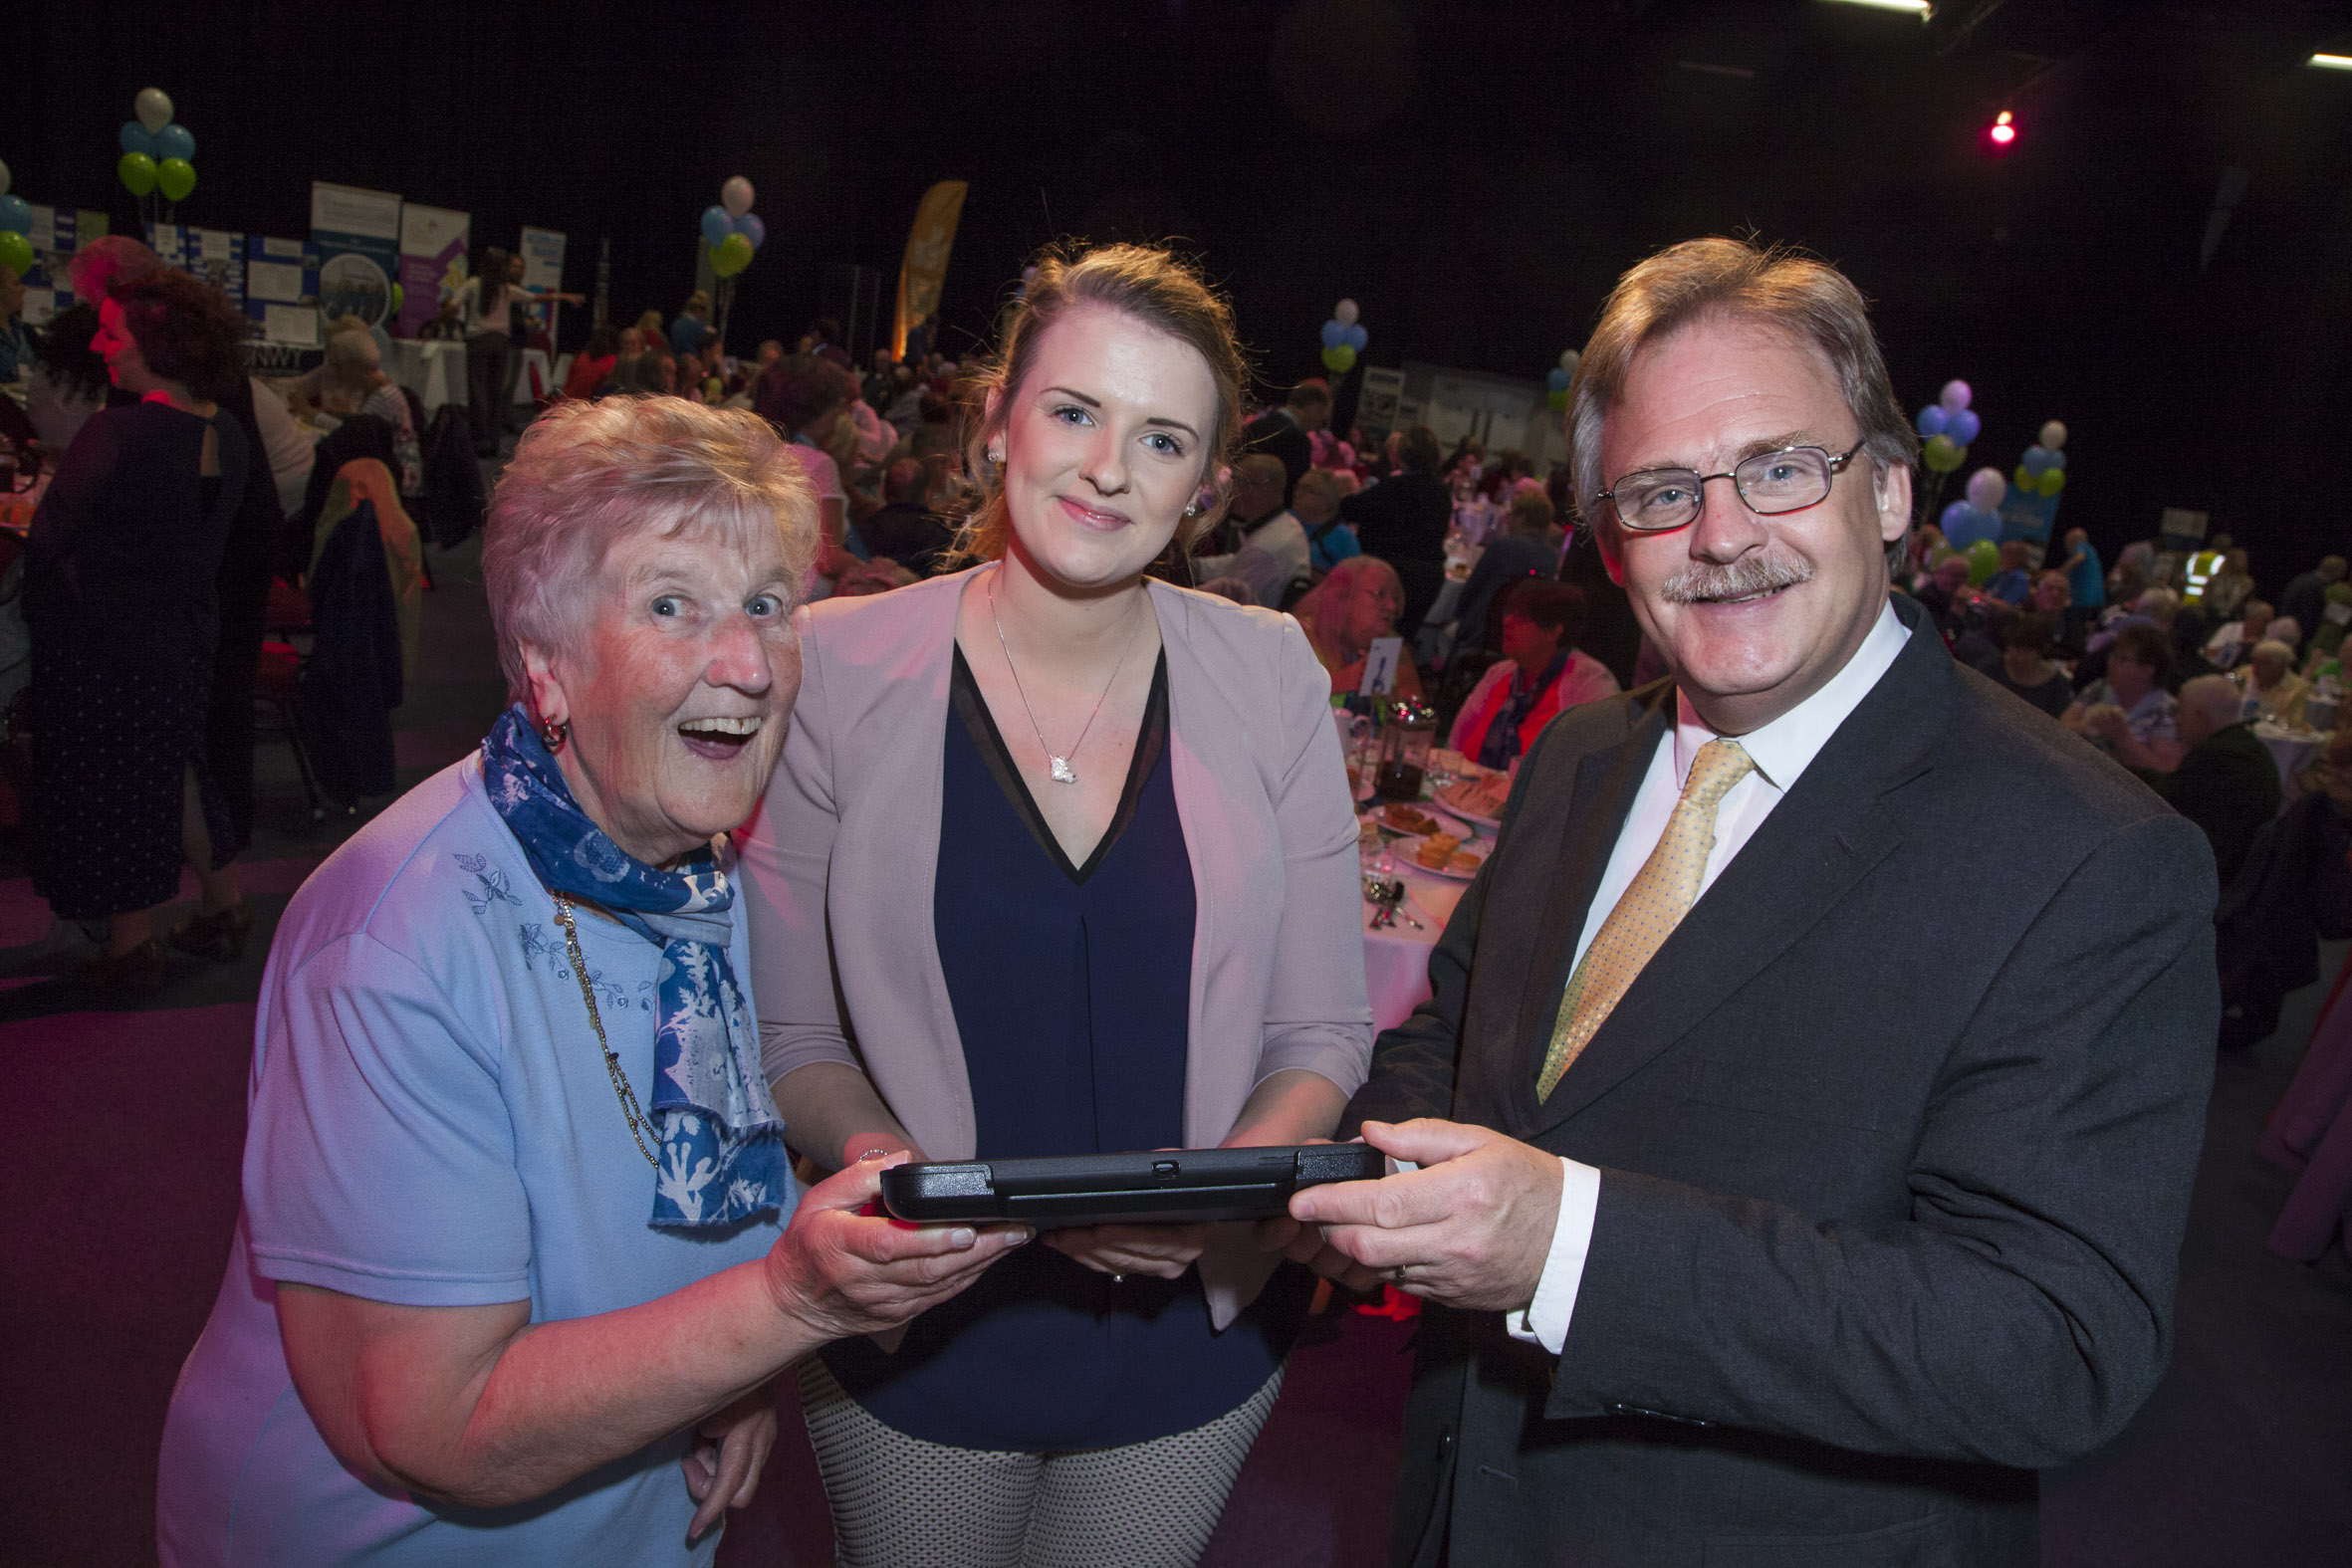 Cartrefi Conwy's Older Person's Day at Venue Cymru. Pictured is Phyllis Parry, Claire Twamtey and Mark Isherwood.